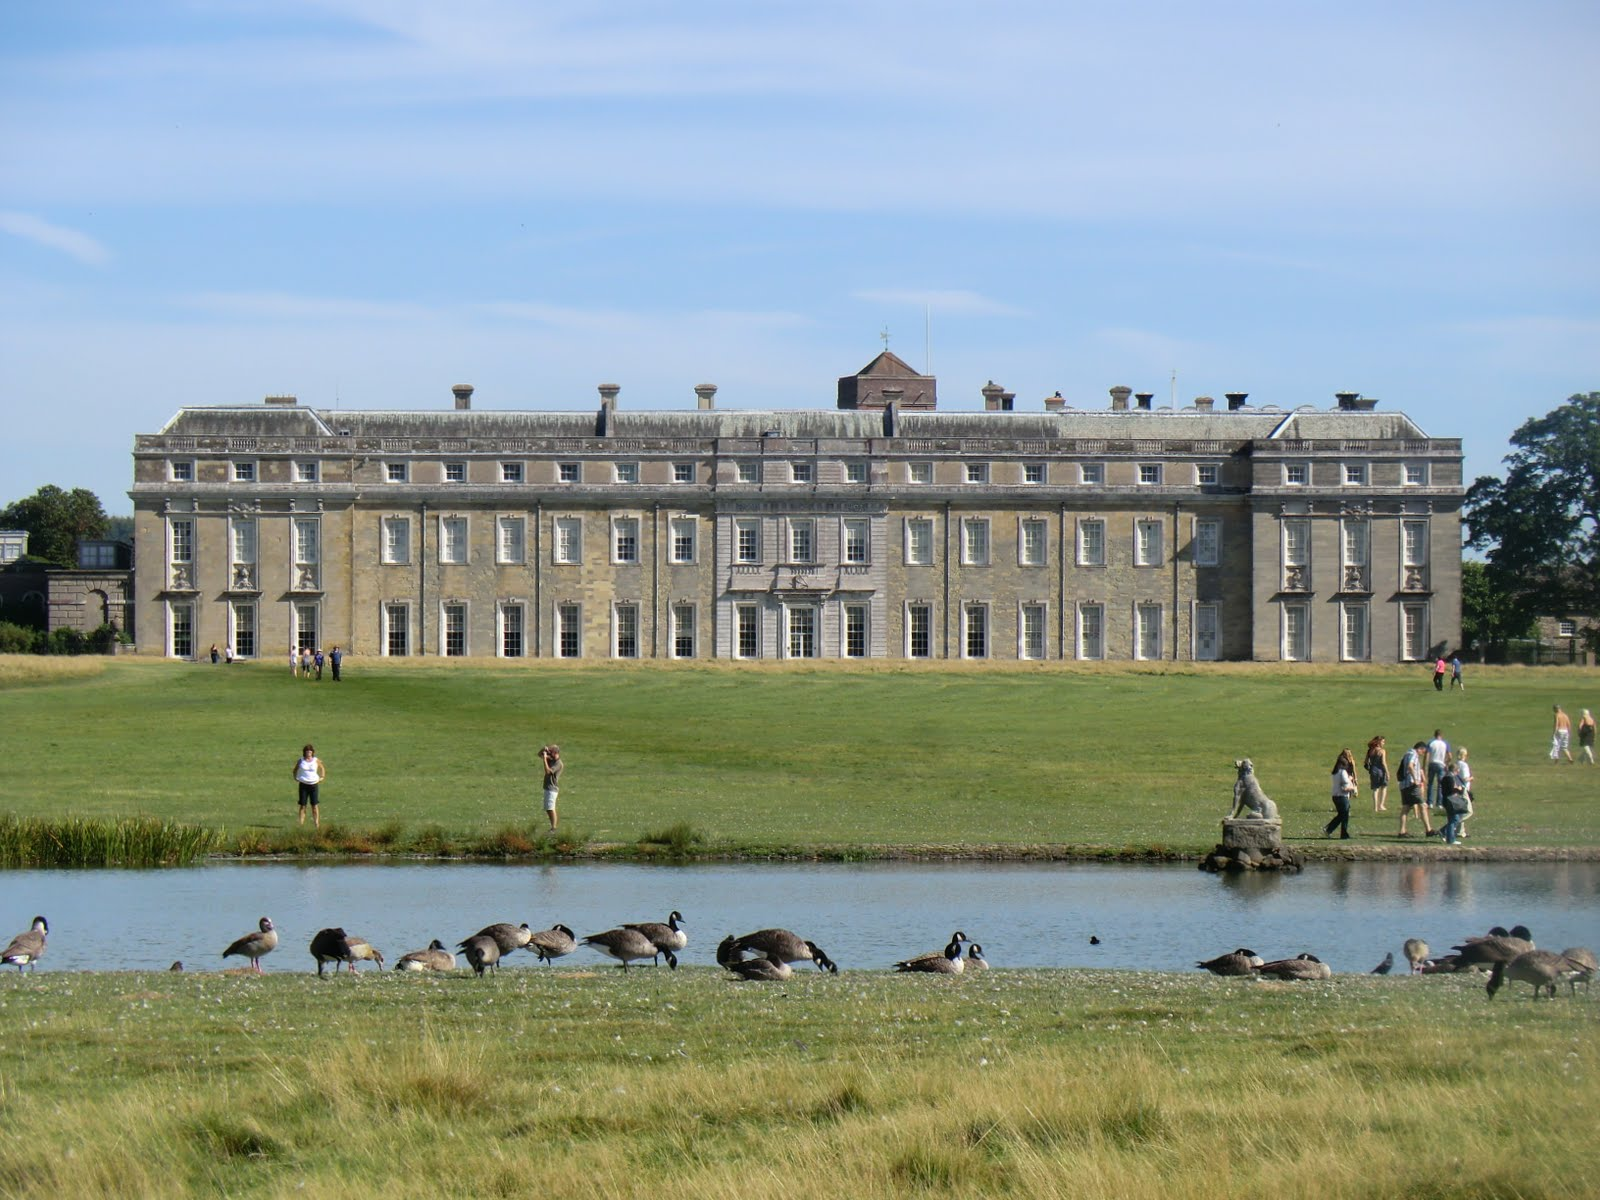 CIMG3999 Petworth House from Upper Pond